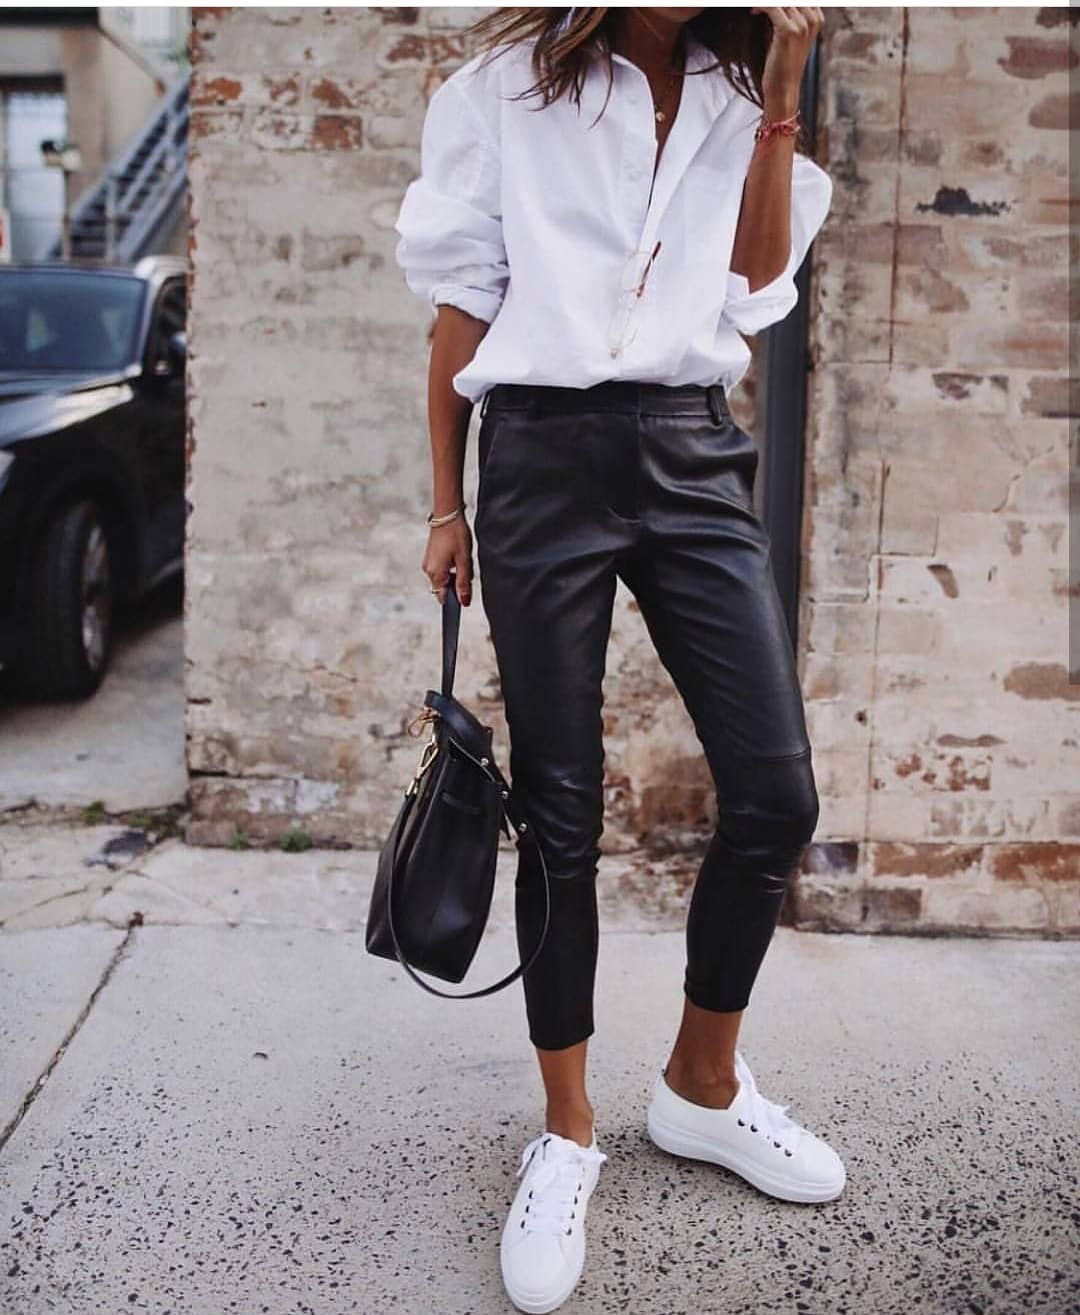 White Shirt With Black Leather Pants And White Kicks For Summer 2019